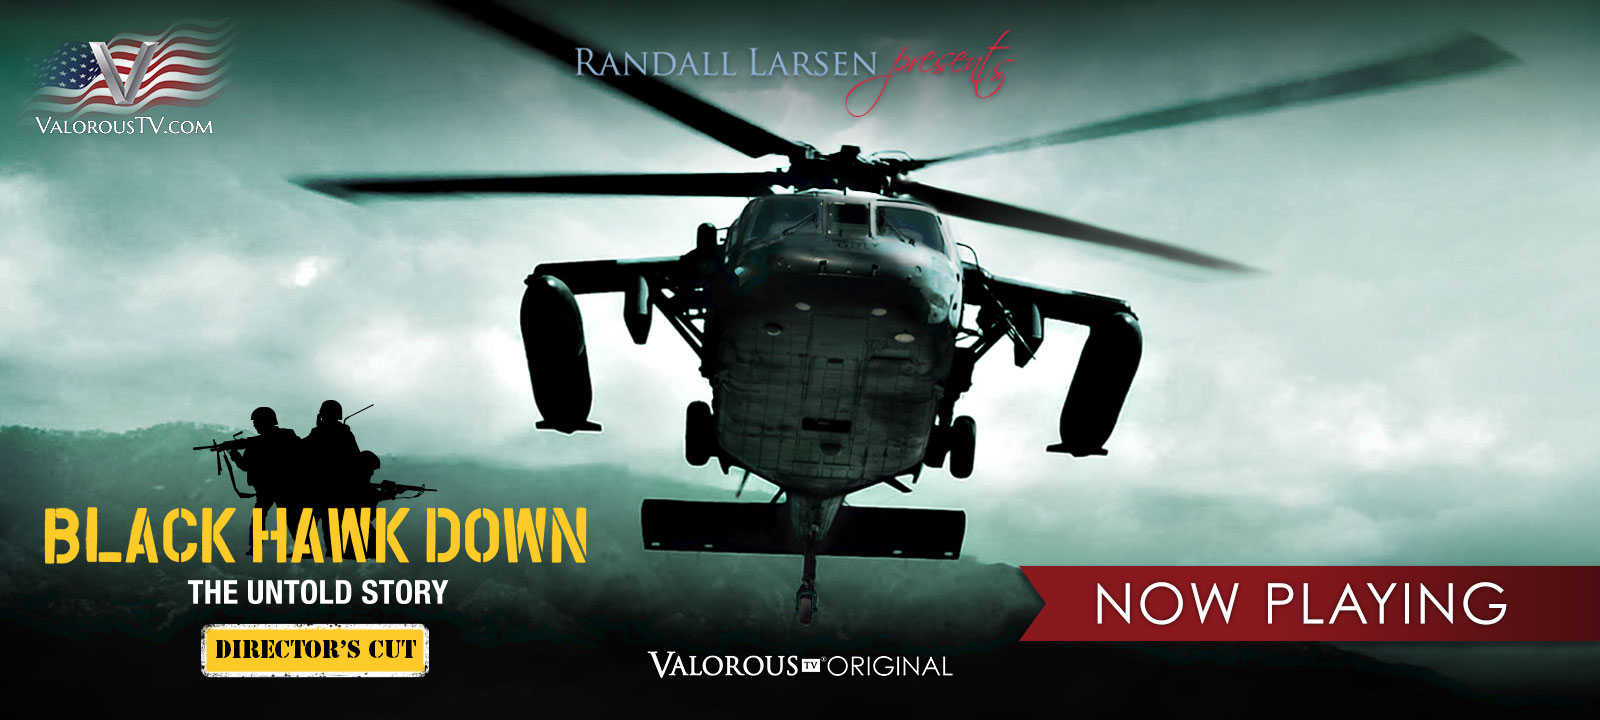 26th Anniversary - Black Hawk Down: The Untold Story